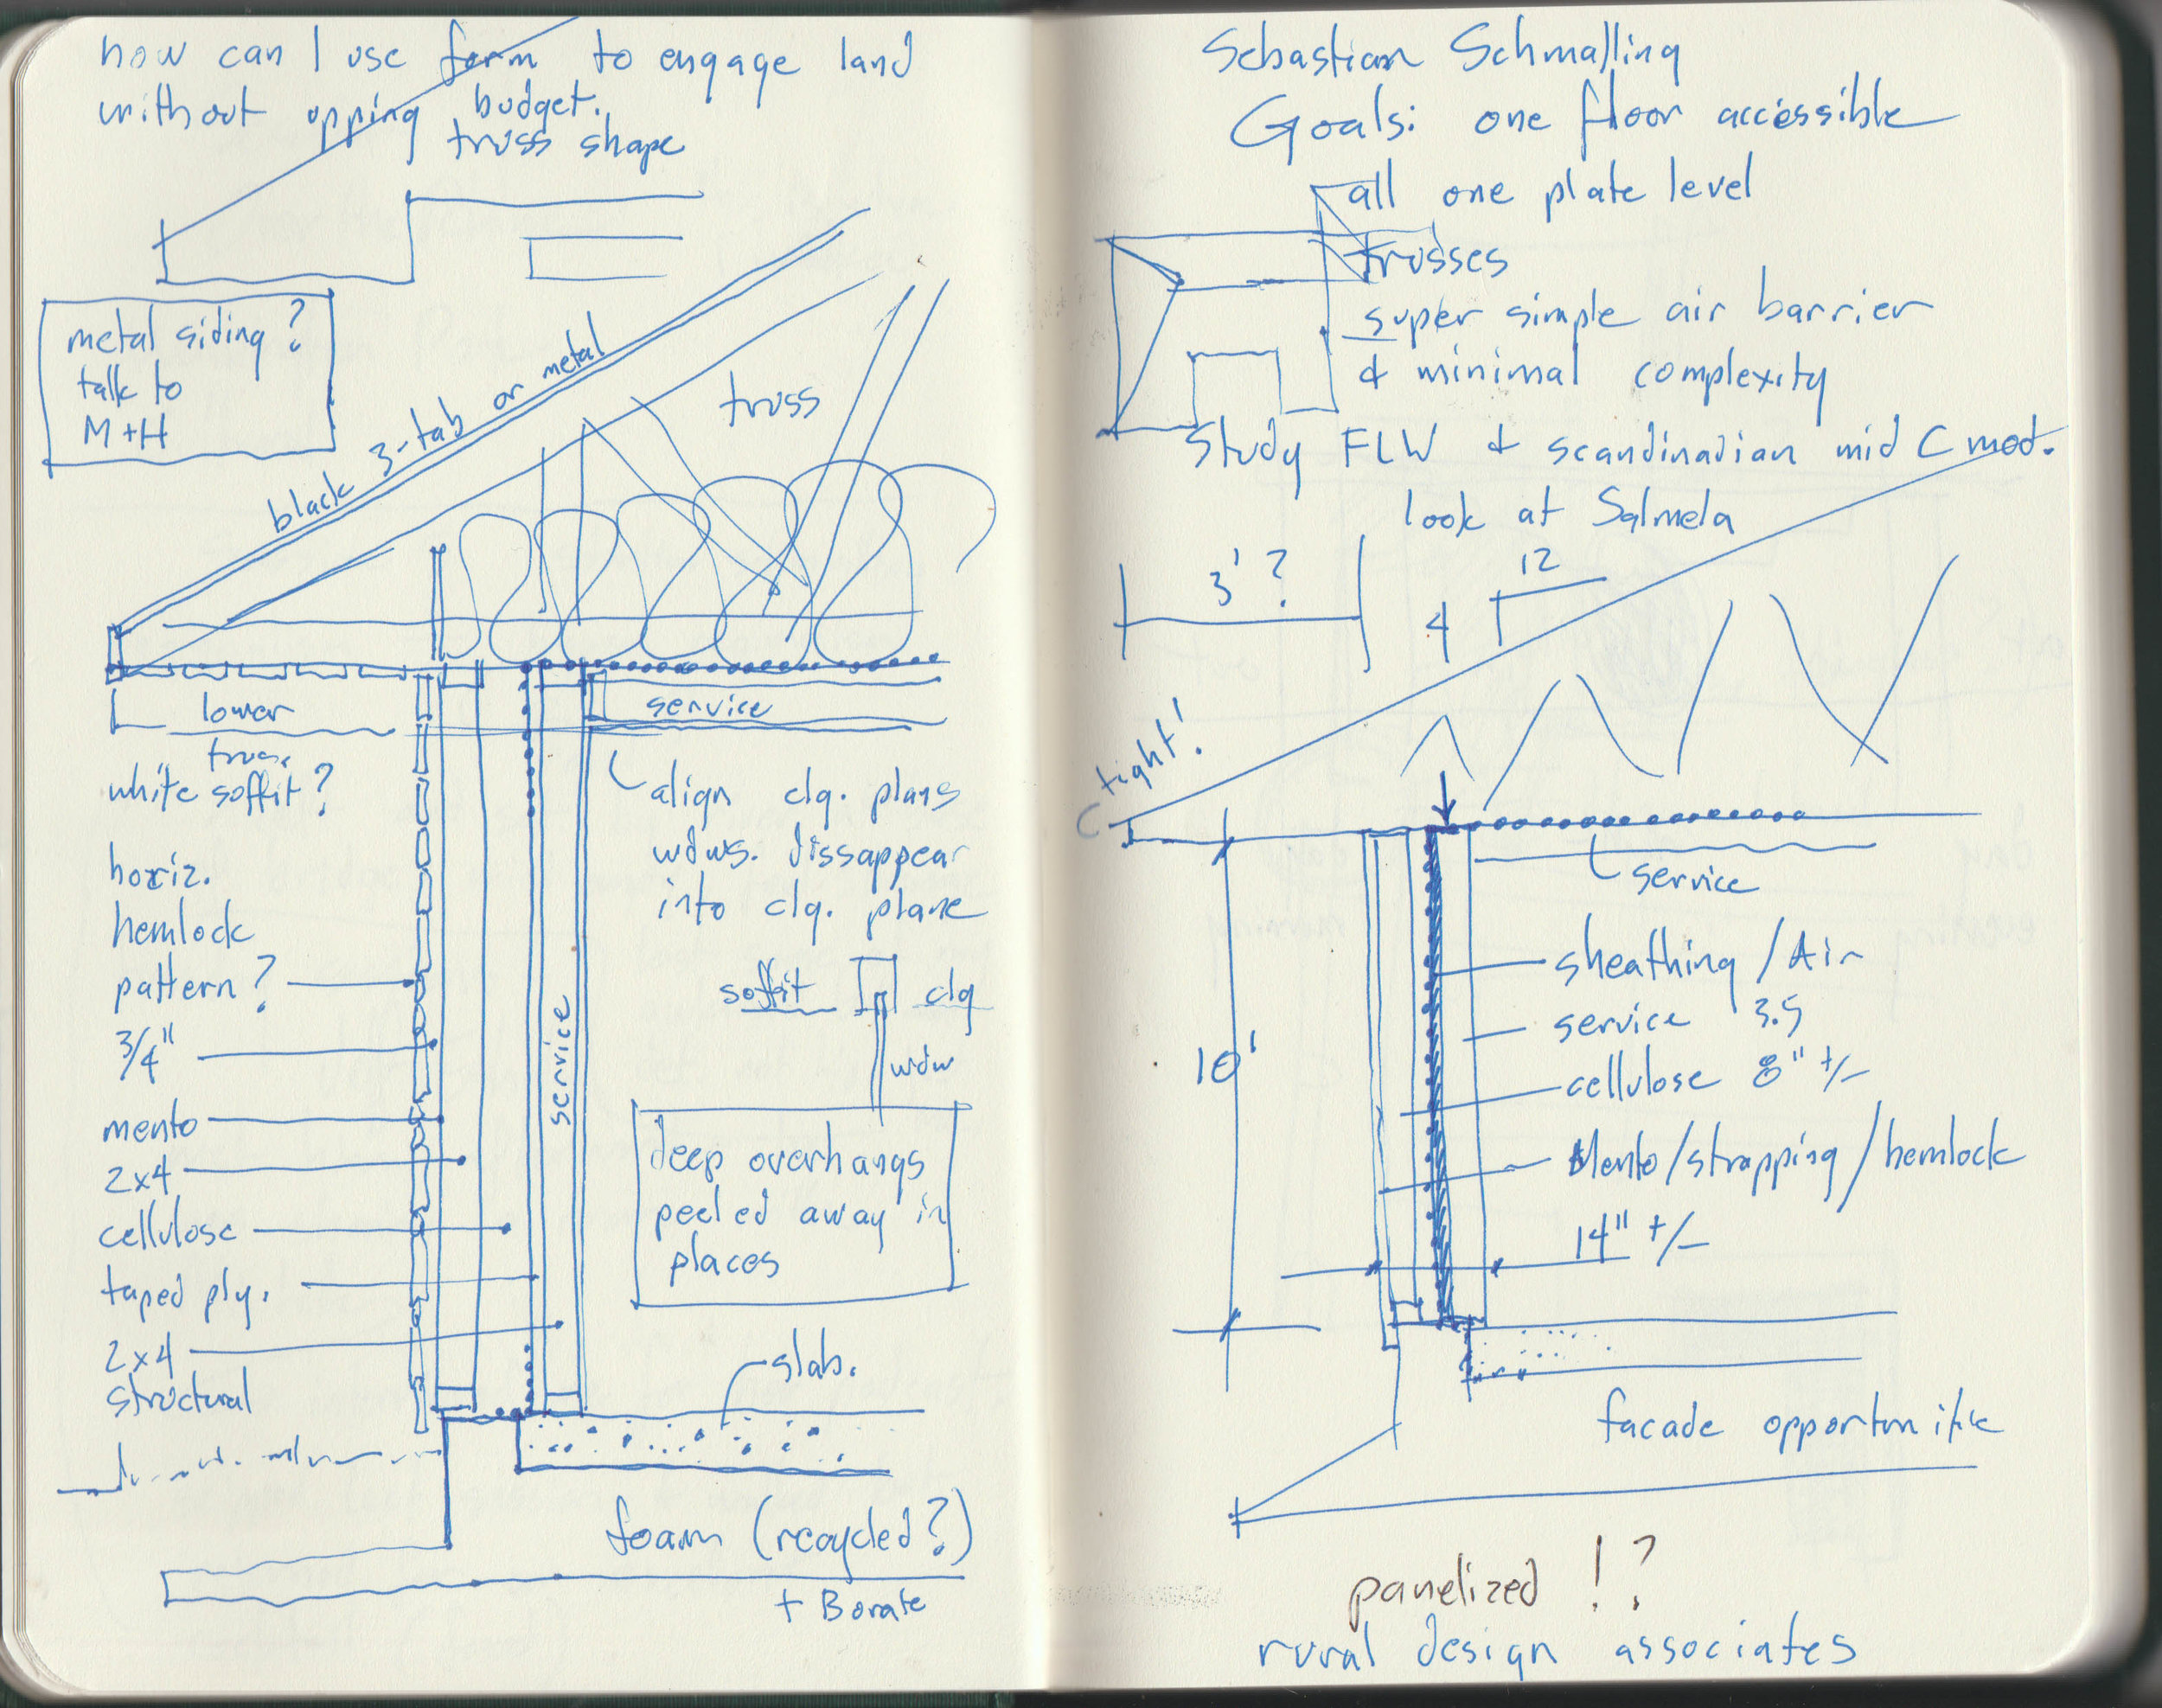 Wall section sketch